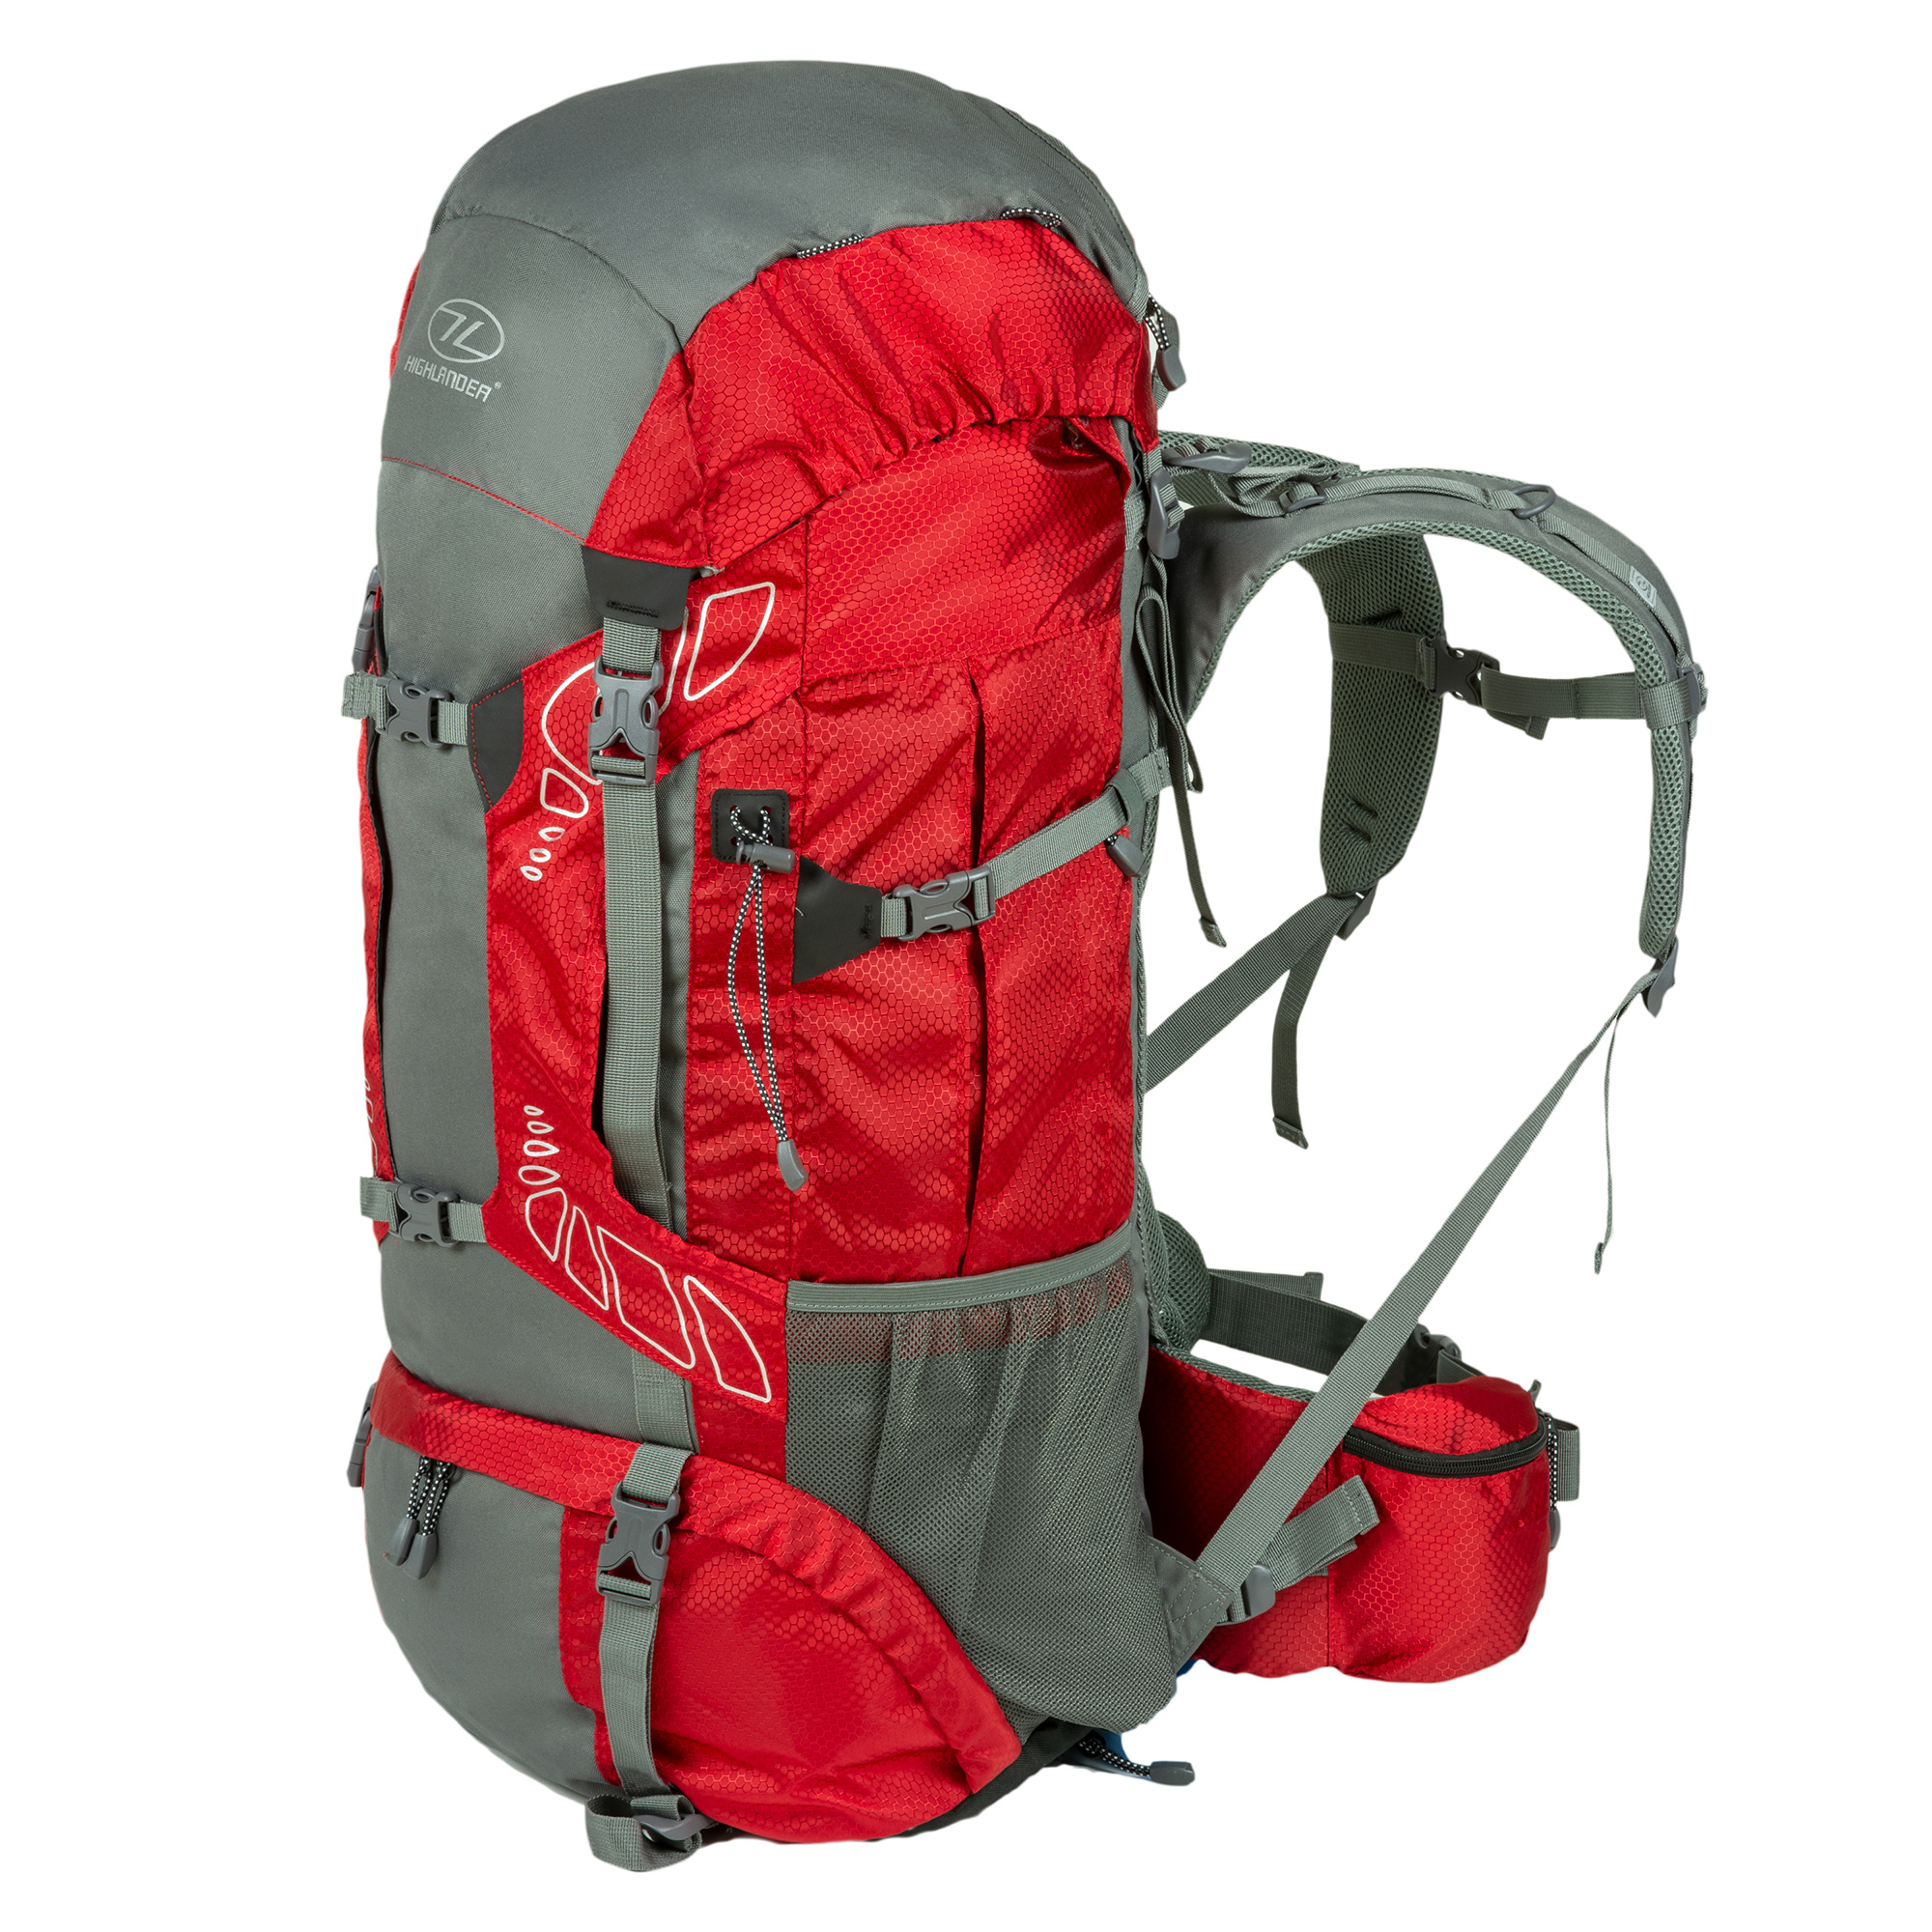 7a77281b2f5 Highlander Discovery 85l backpack - rood | Backpackspullen.nl